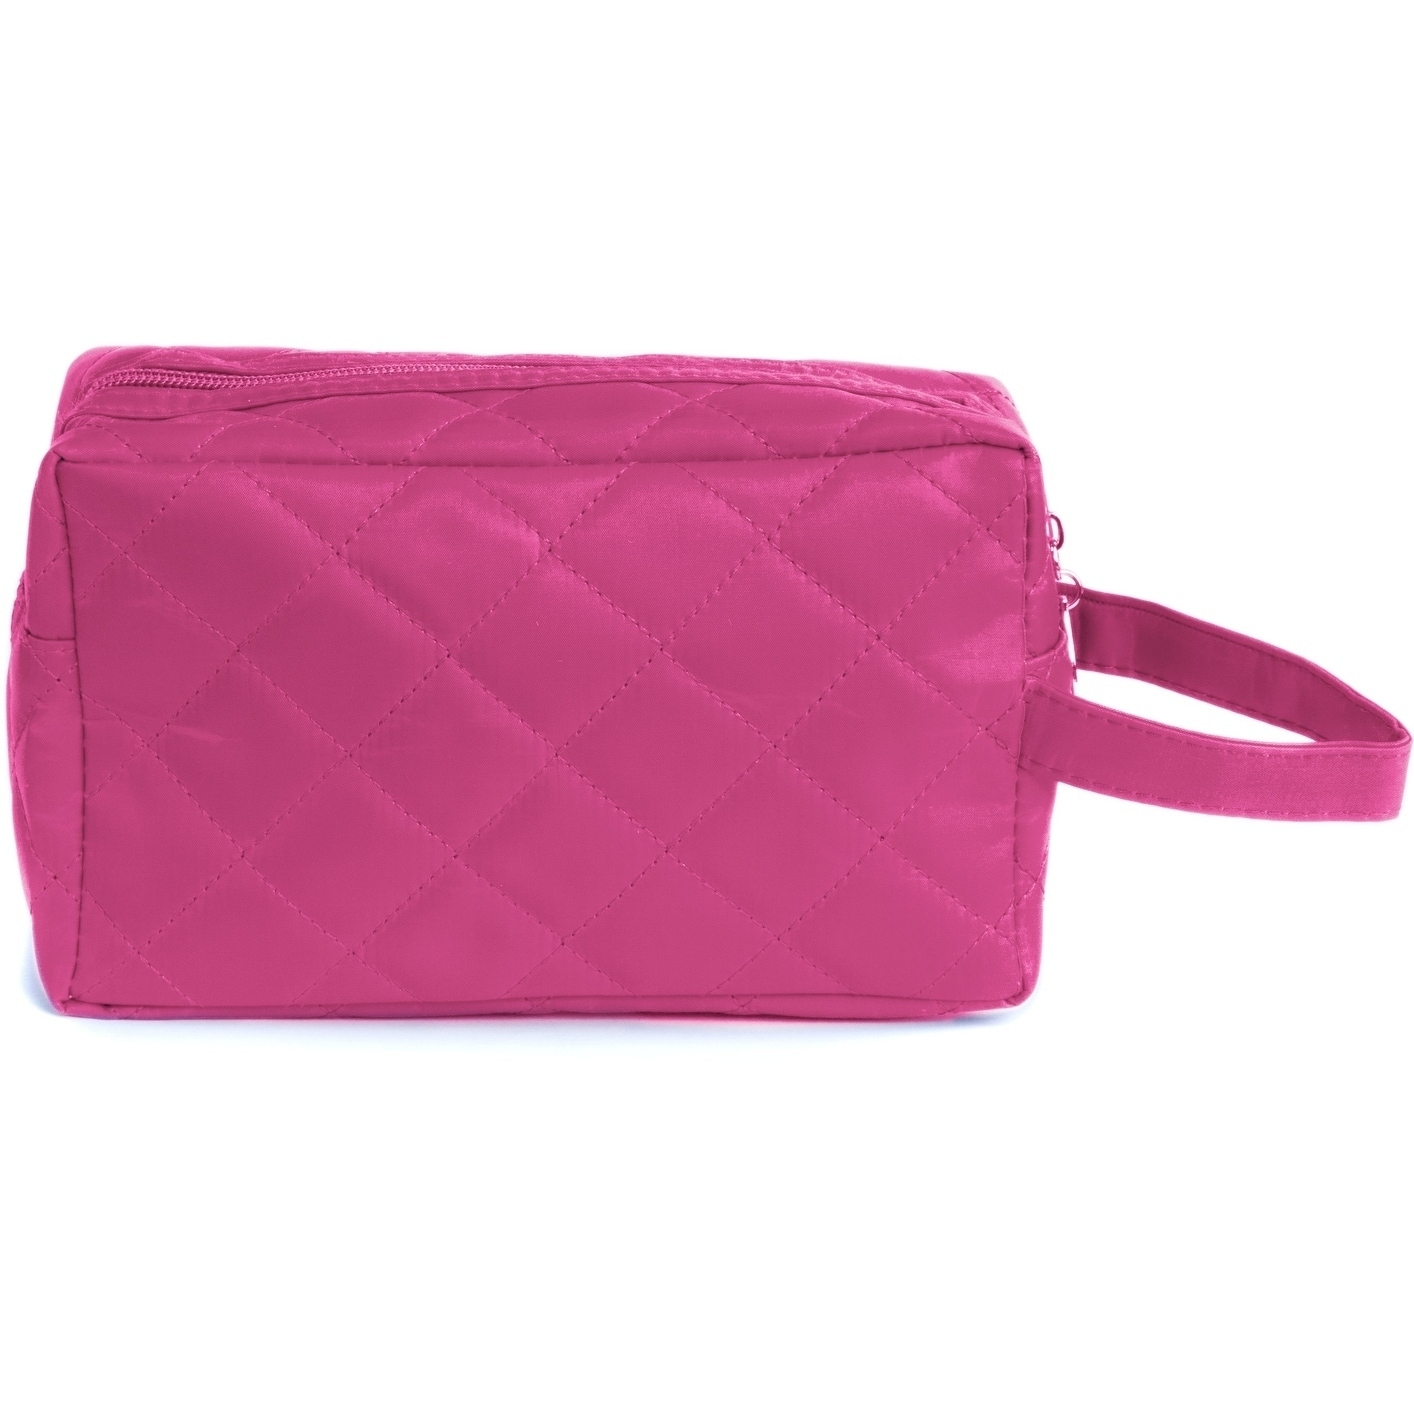 Source · Shop Leisureland Water Resistant Quilted Makeup Bag Cosmetic Bag 6ecea9158cd46